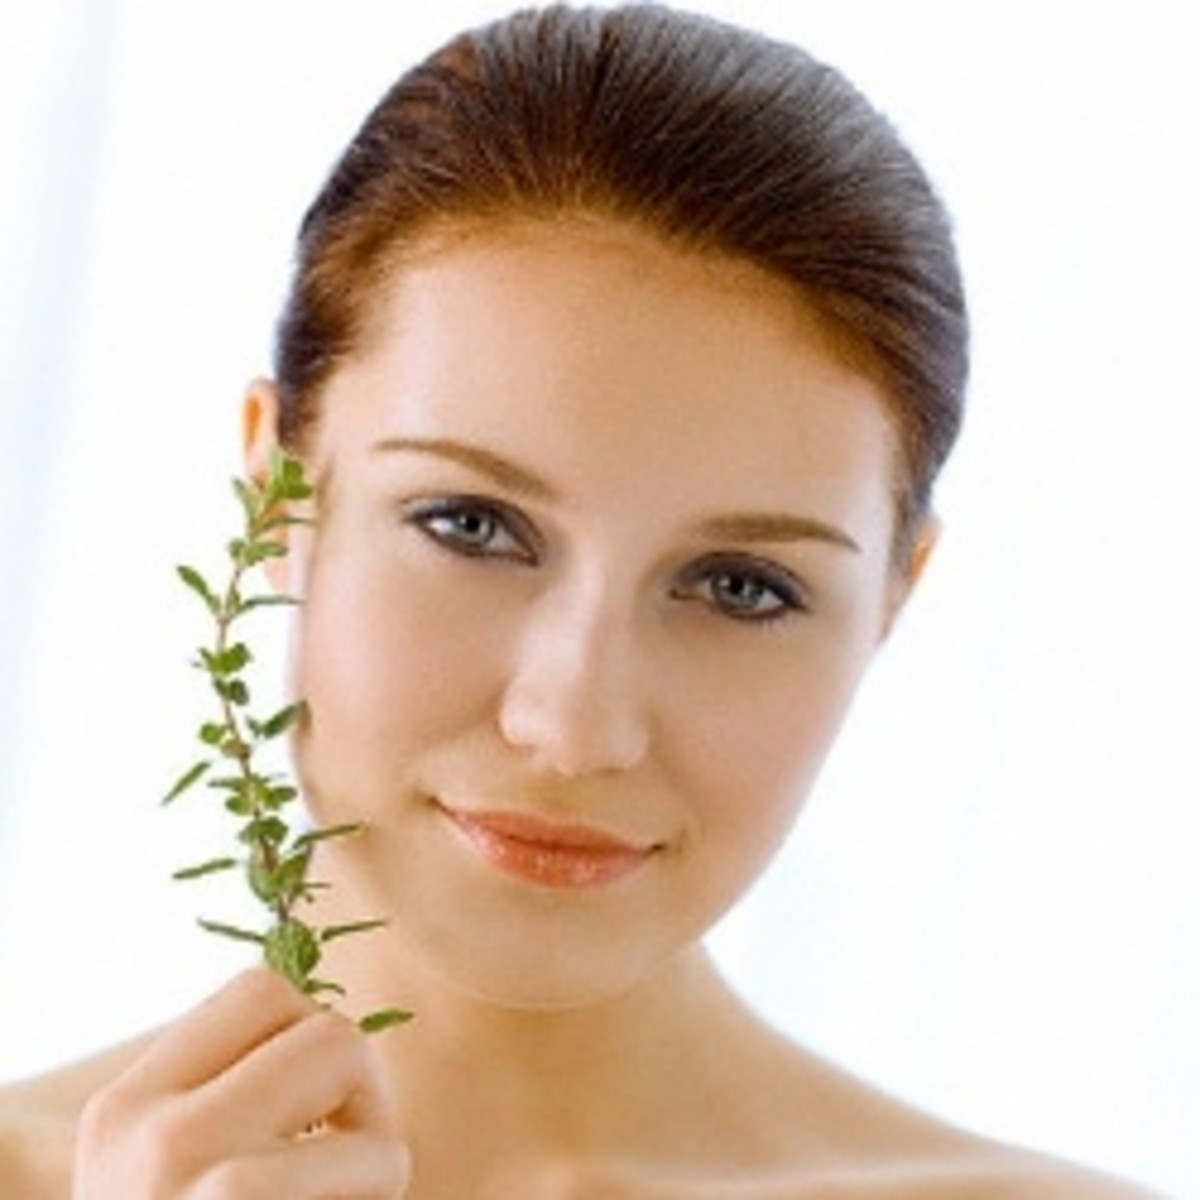 How To Get A Glowing Complexion Naturally